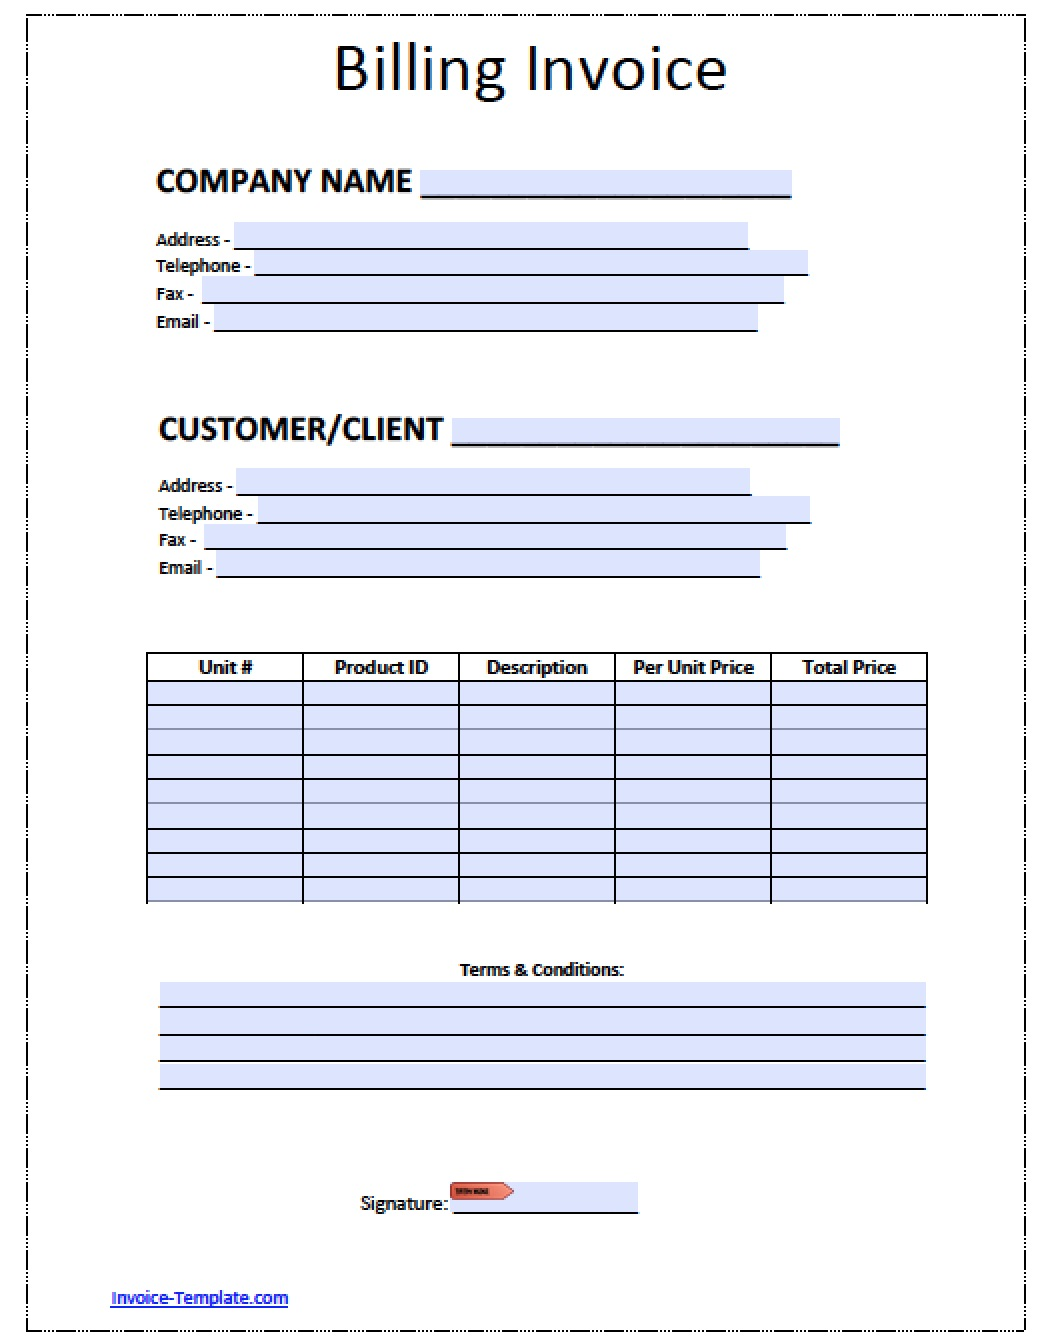 Bill format template selowithjo free billing invoice template excel pdf word doc bill format template wajeb Choice Image